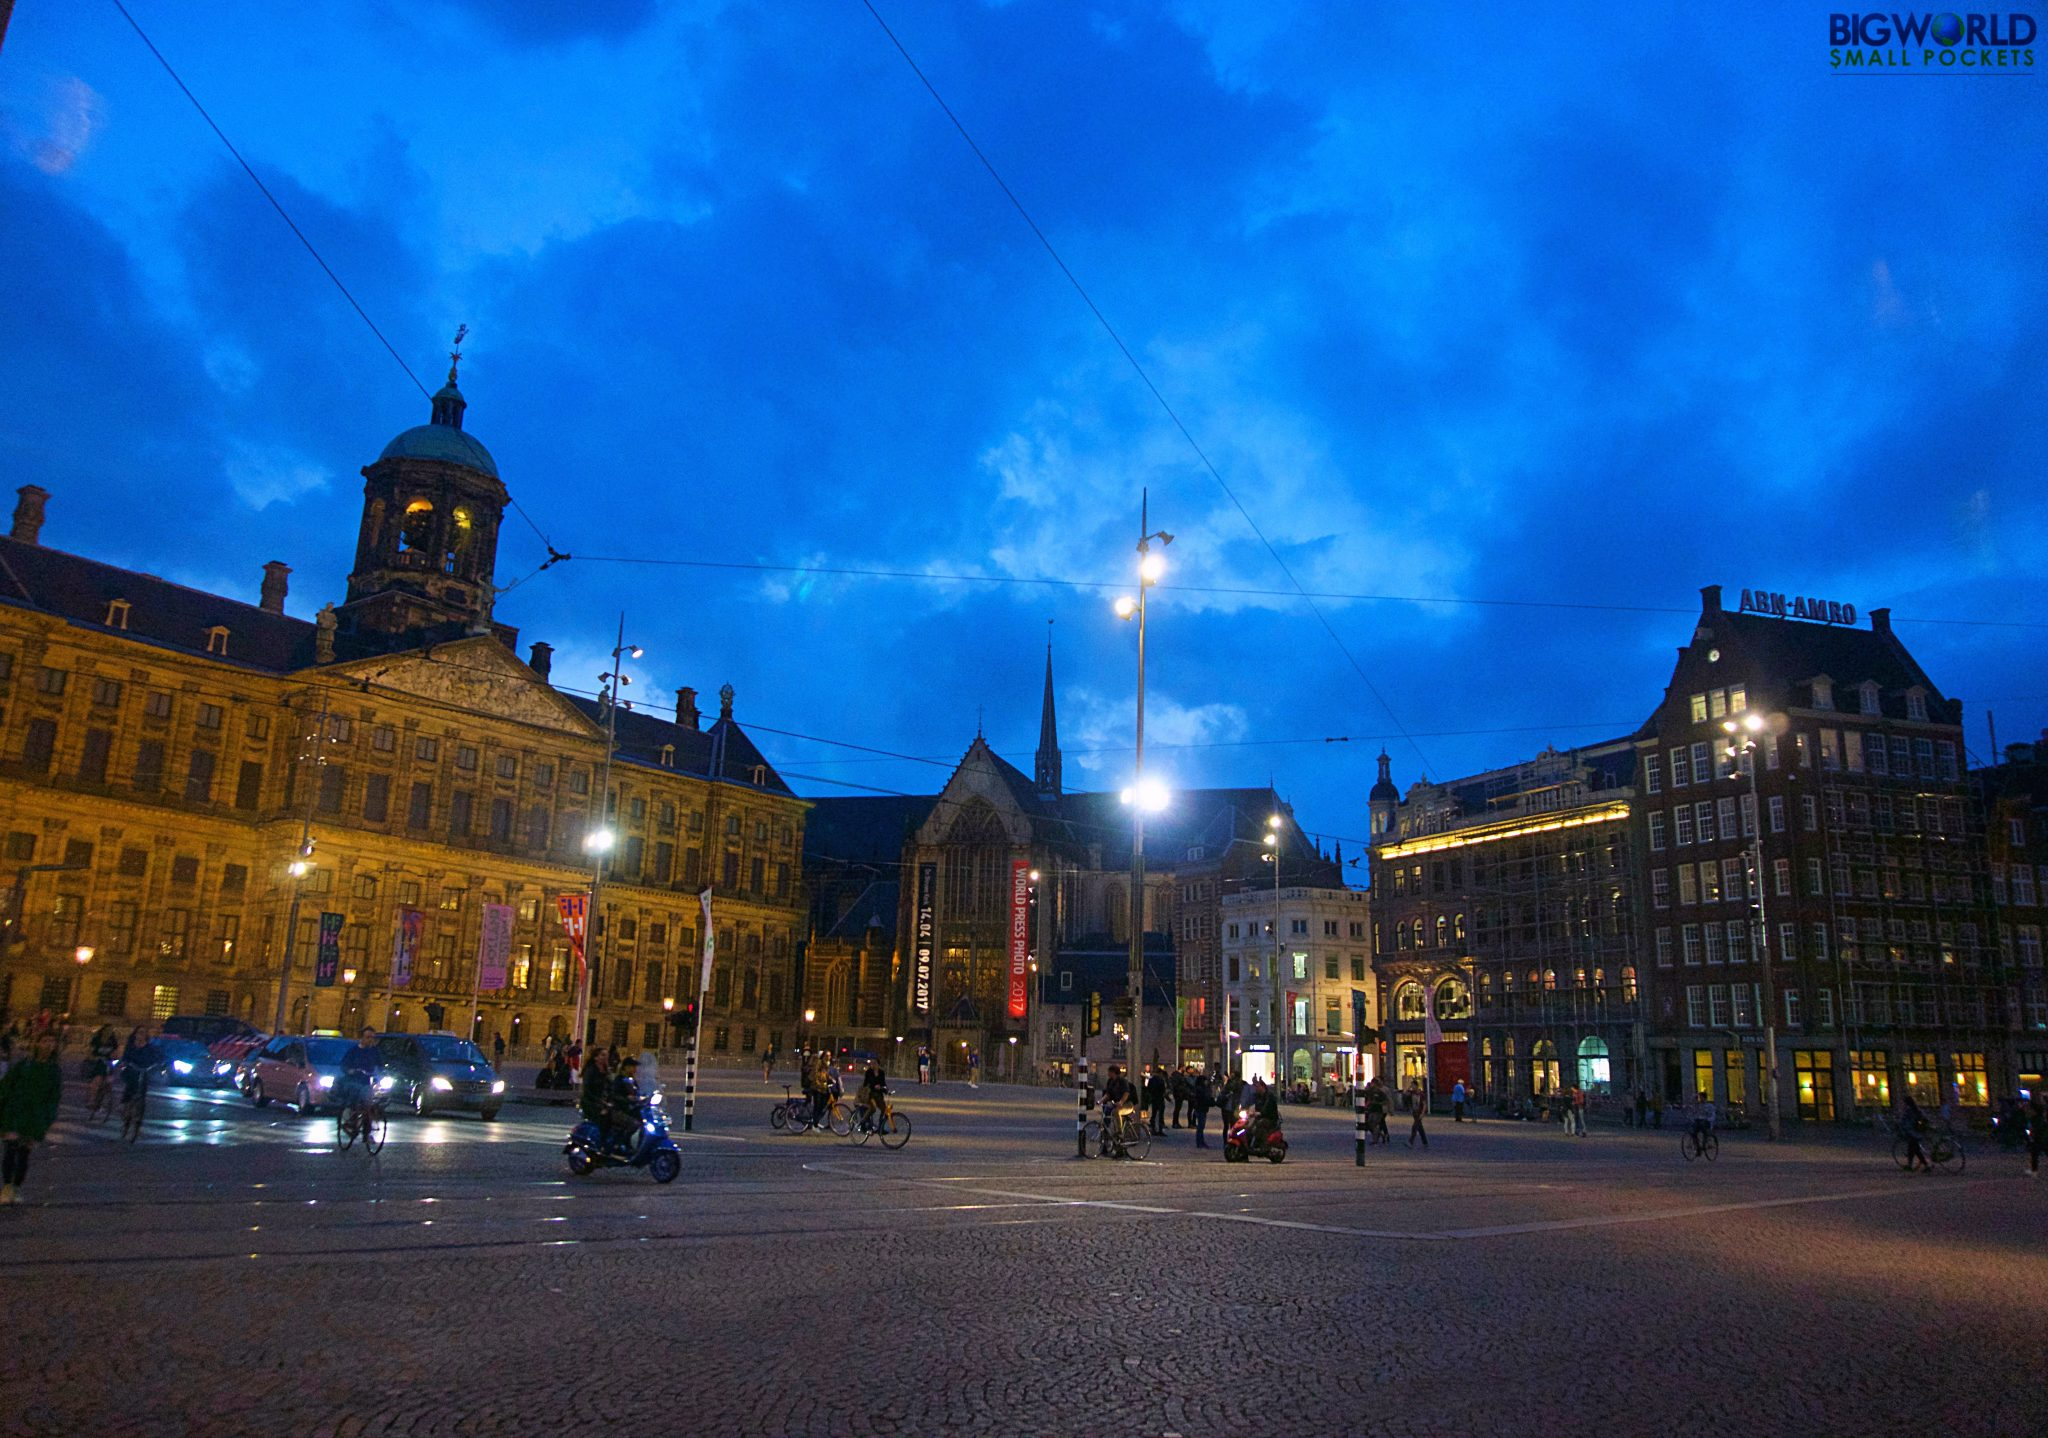 Top 10 Free Things to do in Amsterdam  Big World Small